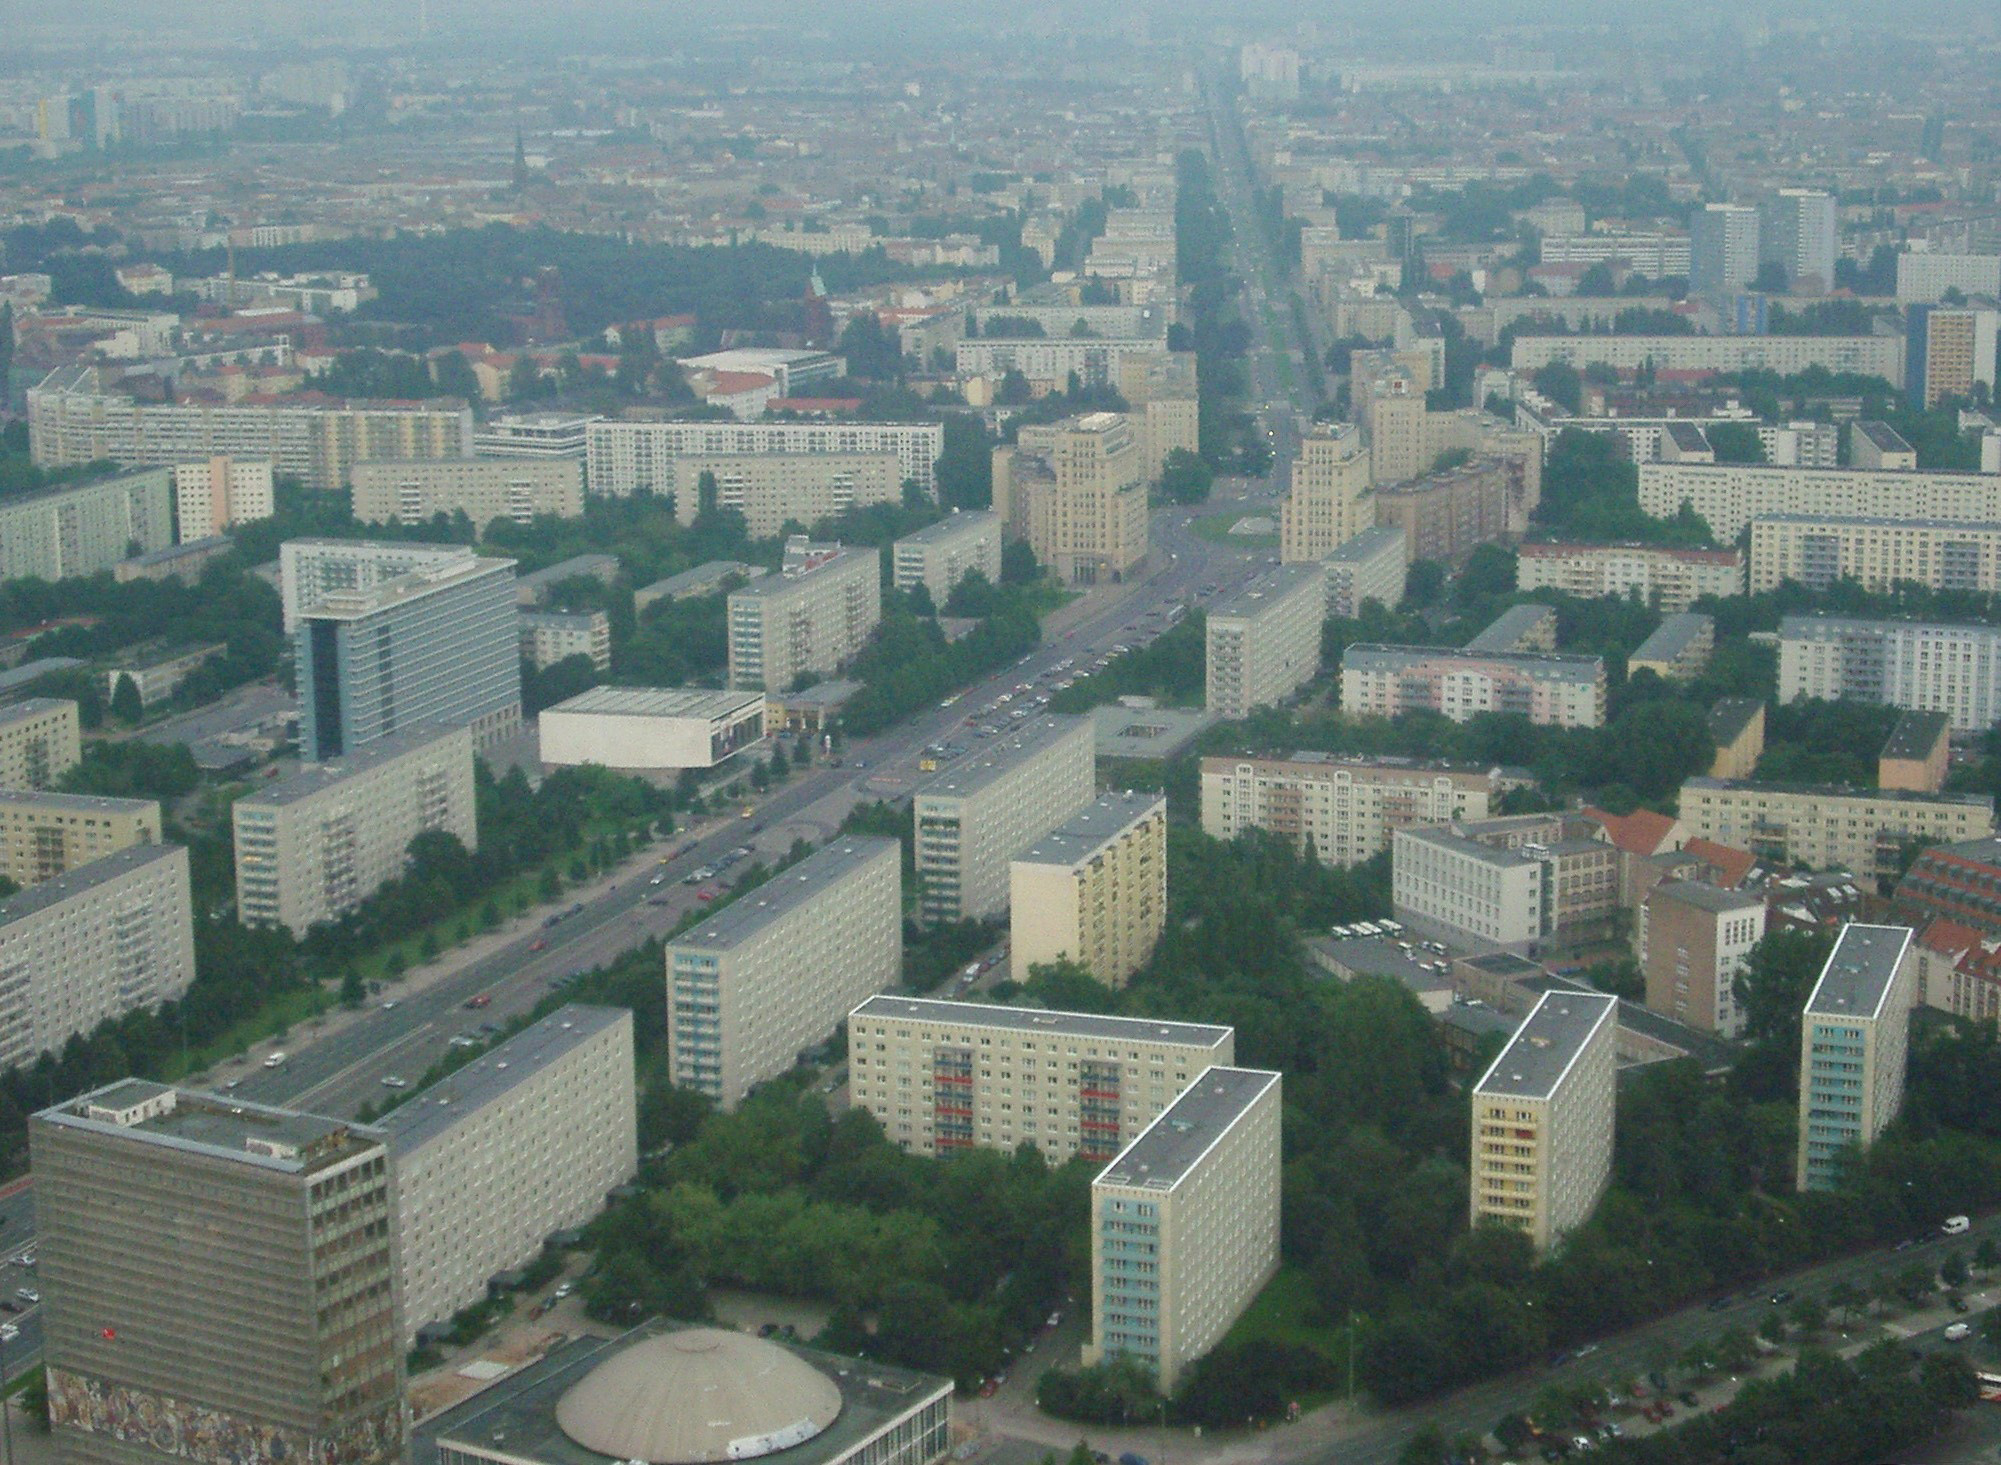 Rooftop view over East Berlin showing the old communist block with its ordered rows of concrete structures